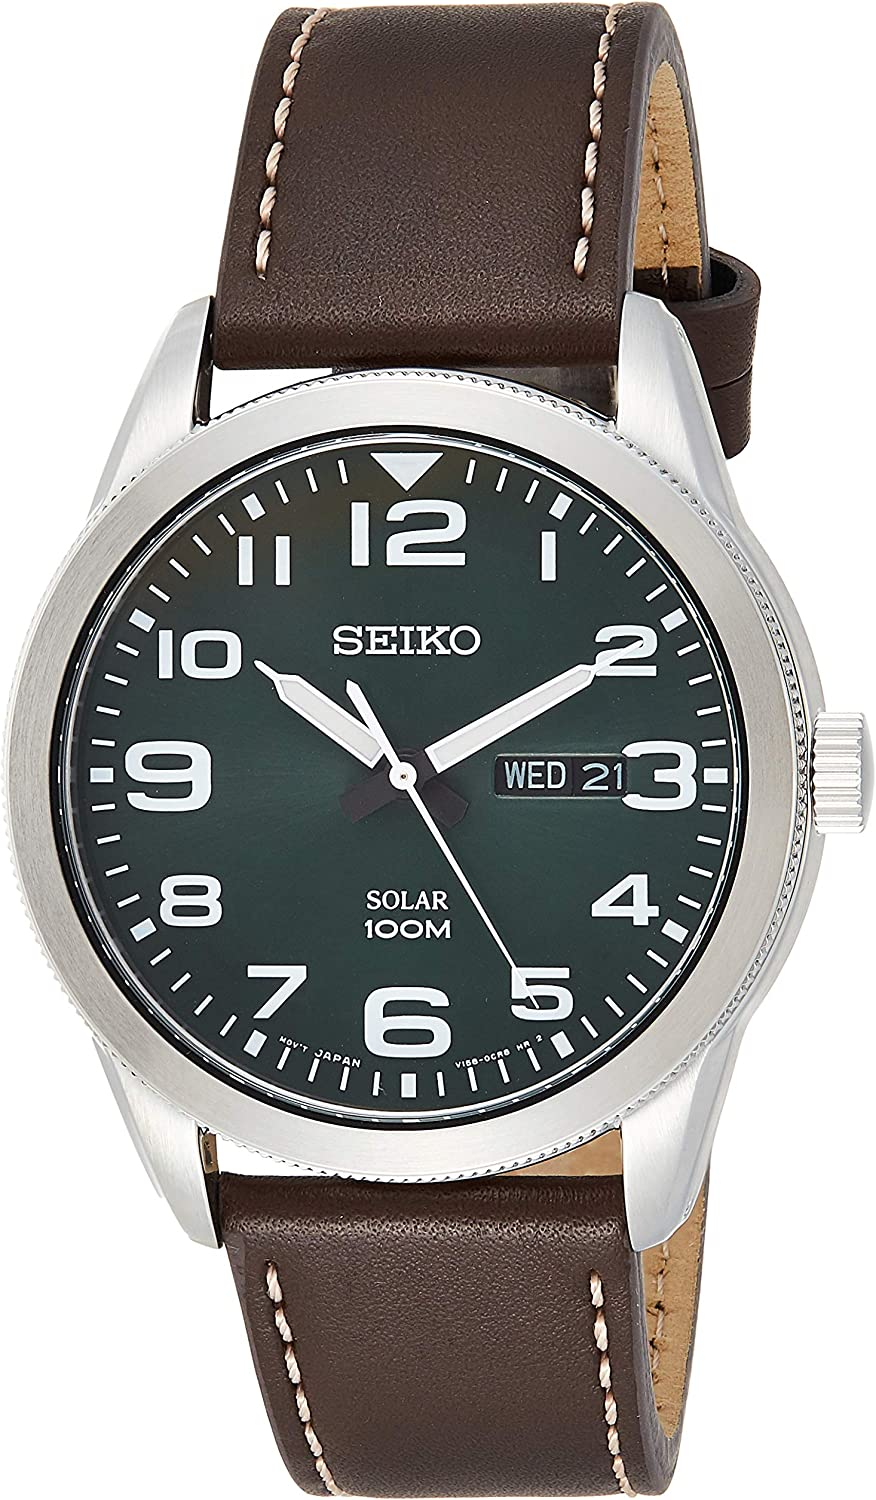 Seiko Men's Year-Round Stainless Steel Solar Powered Watch with Leather Strap, Brown (Model: SNE473P1)